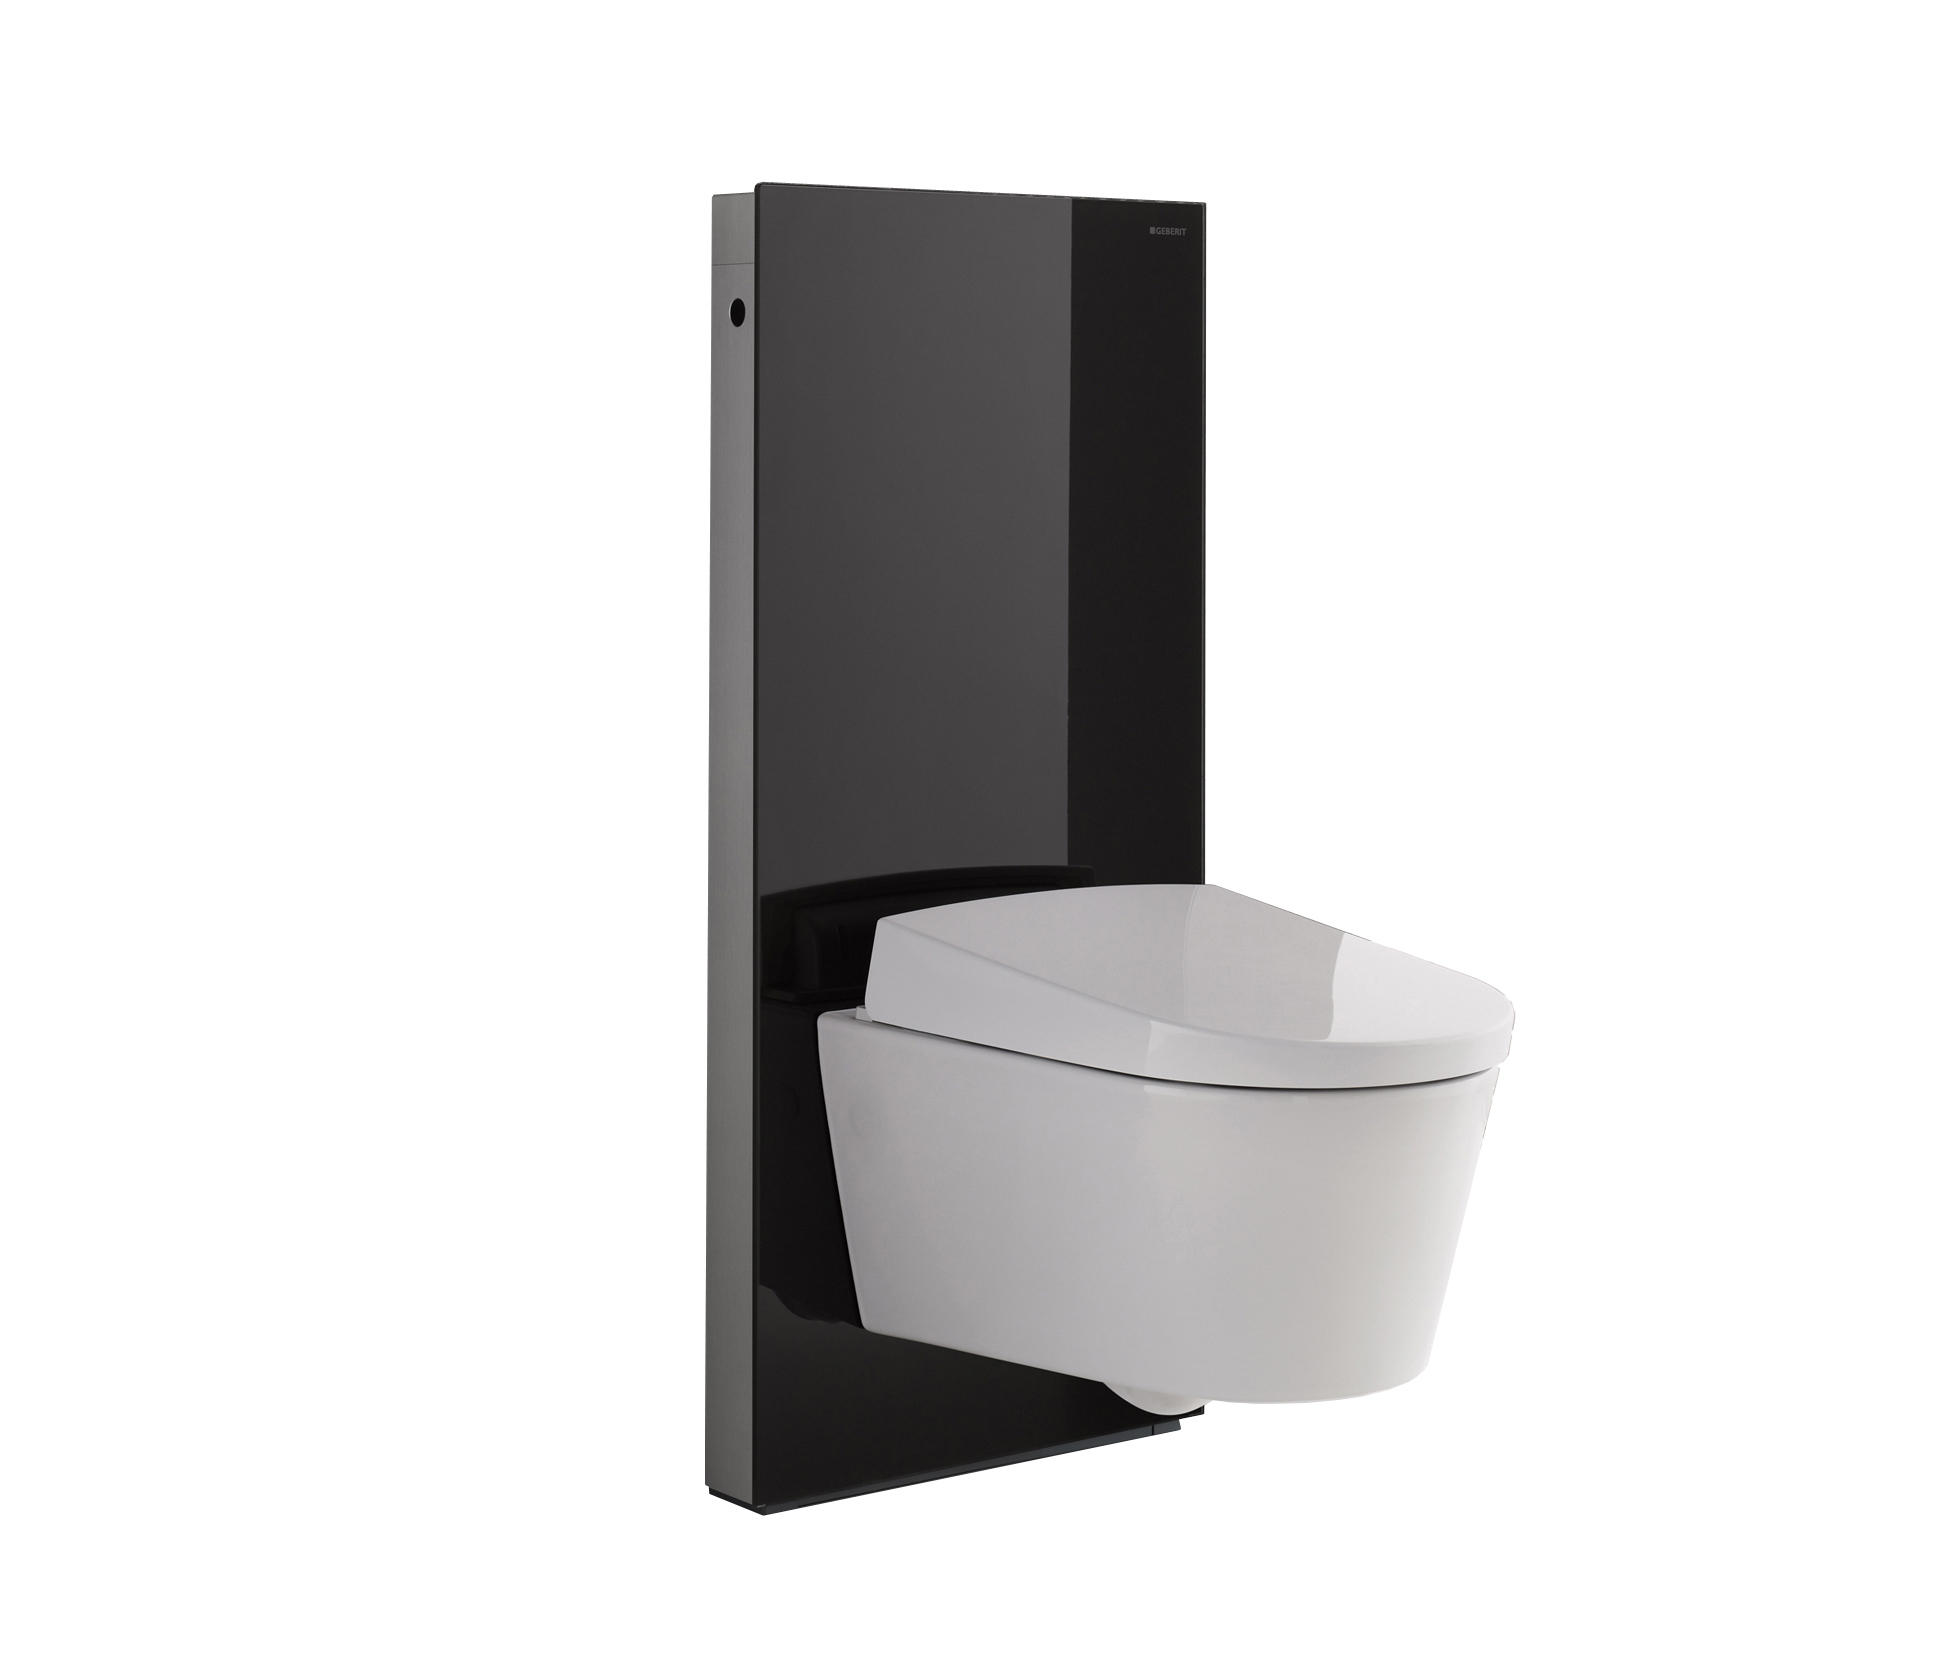 geberit monolith sanitary module for wcs toilets from geberit architonic. Black Bedroom Furniture Sets. Home Design Ideas